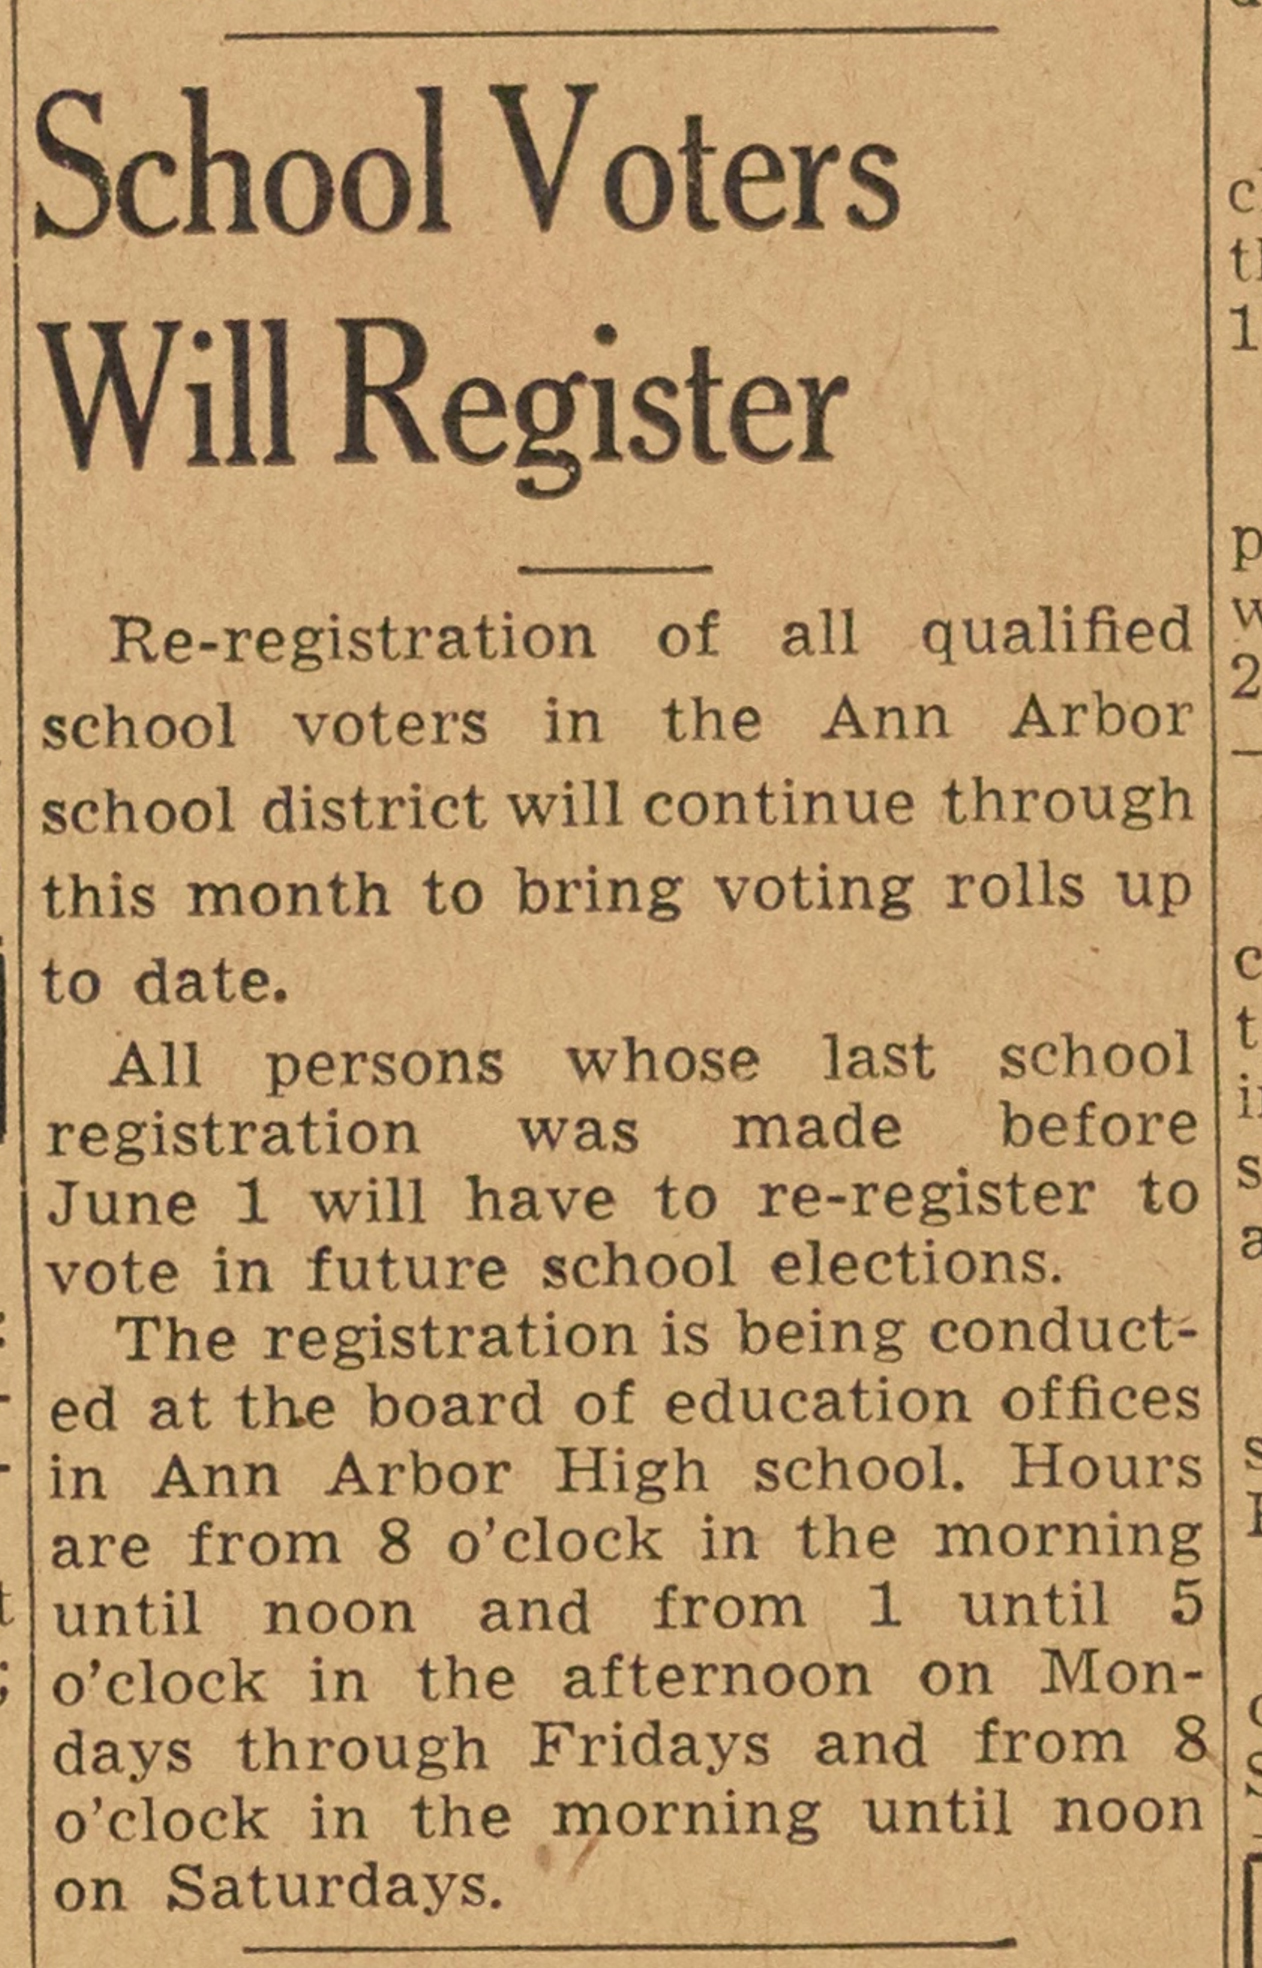 School Voters Will Register image